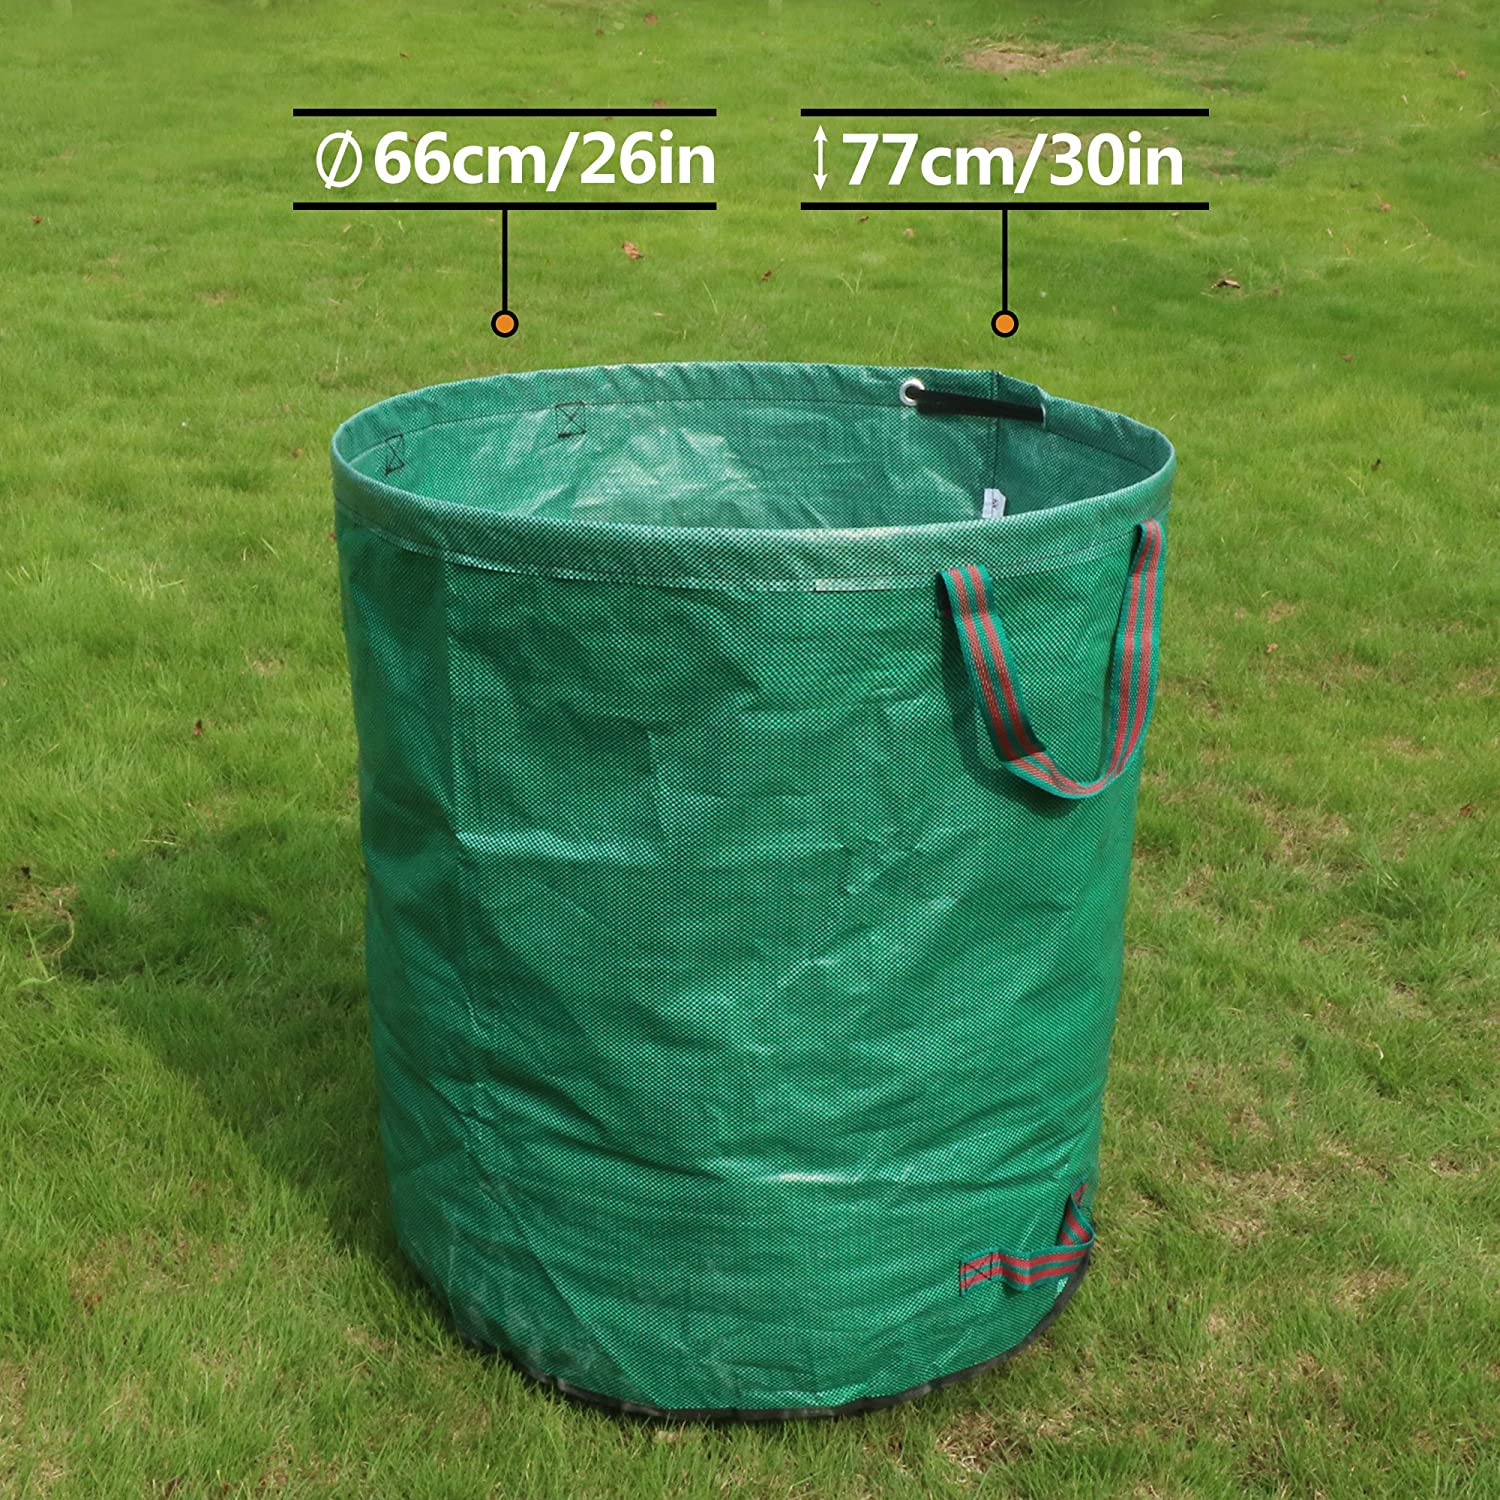 FLORA GUARD 3-Pack 72 Gallons Garden Waste Bags Heavy Duty Compost Bags with Handles